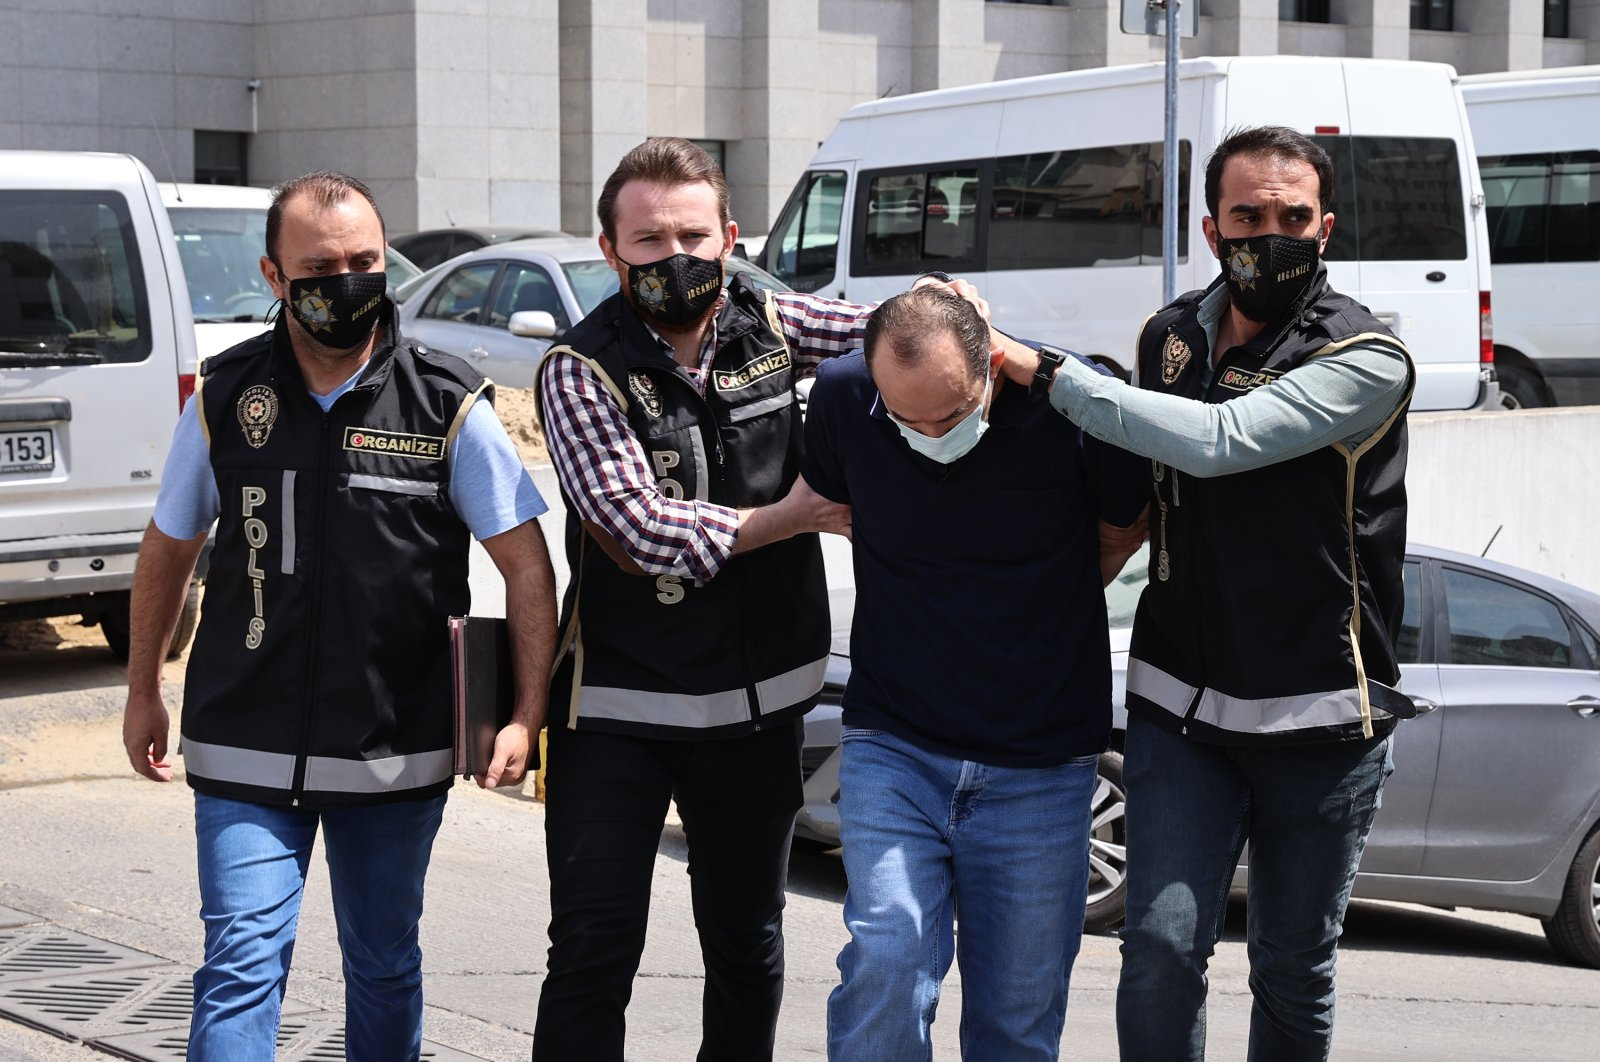 Police officers escort İbrahim Tatar to the courthouse, in Istanbul, Turkey, May 4, 2021. (AA PHOTO)